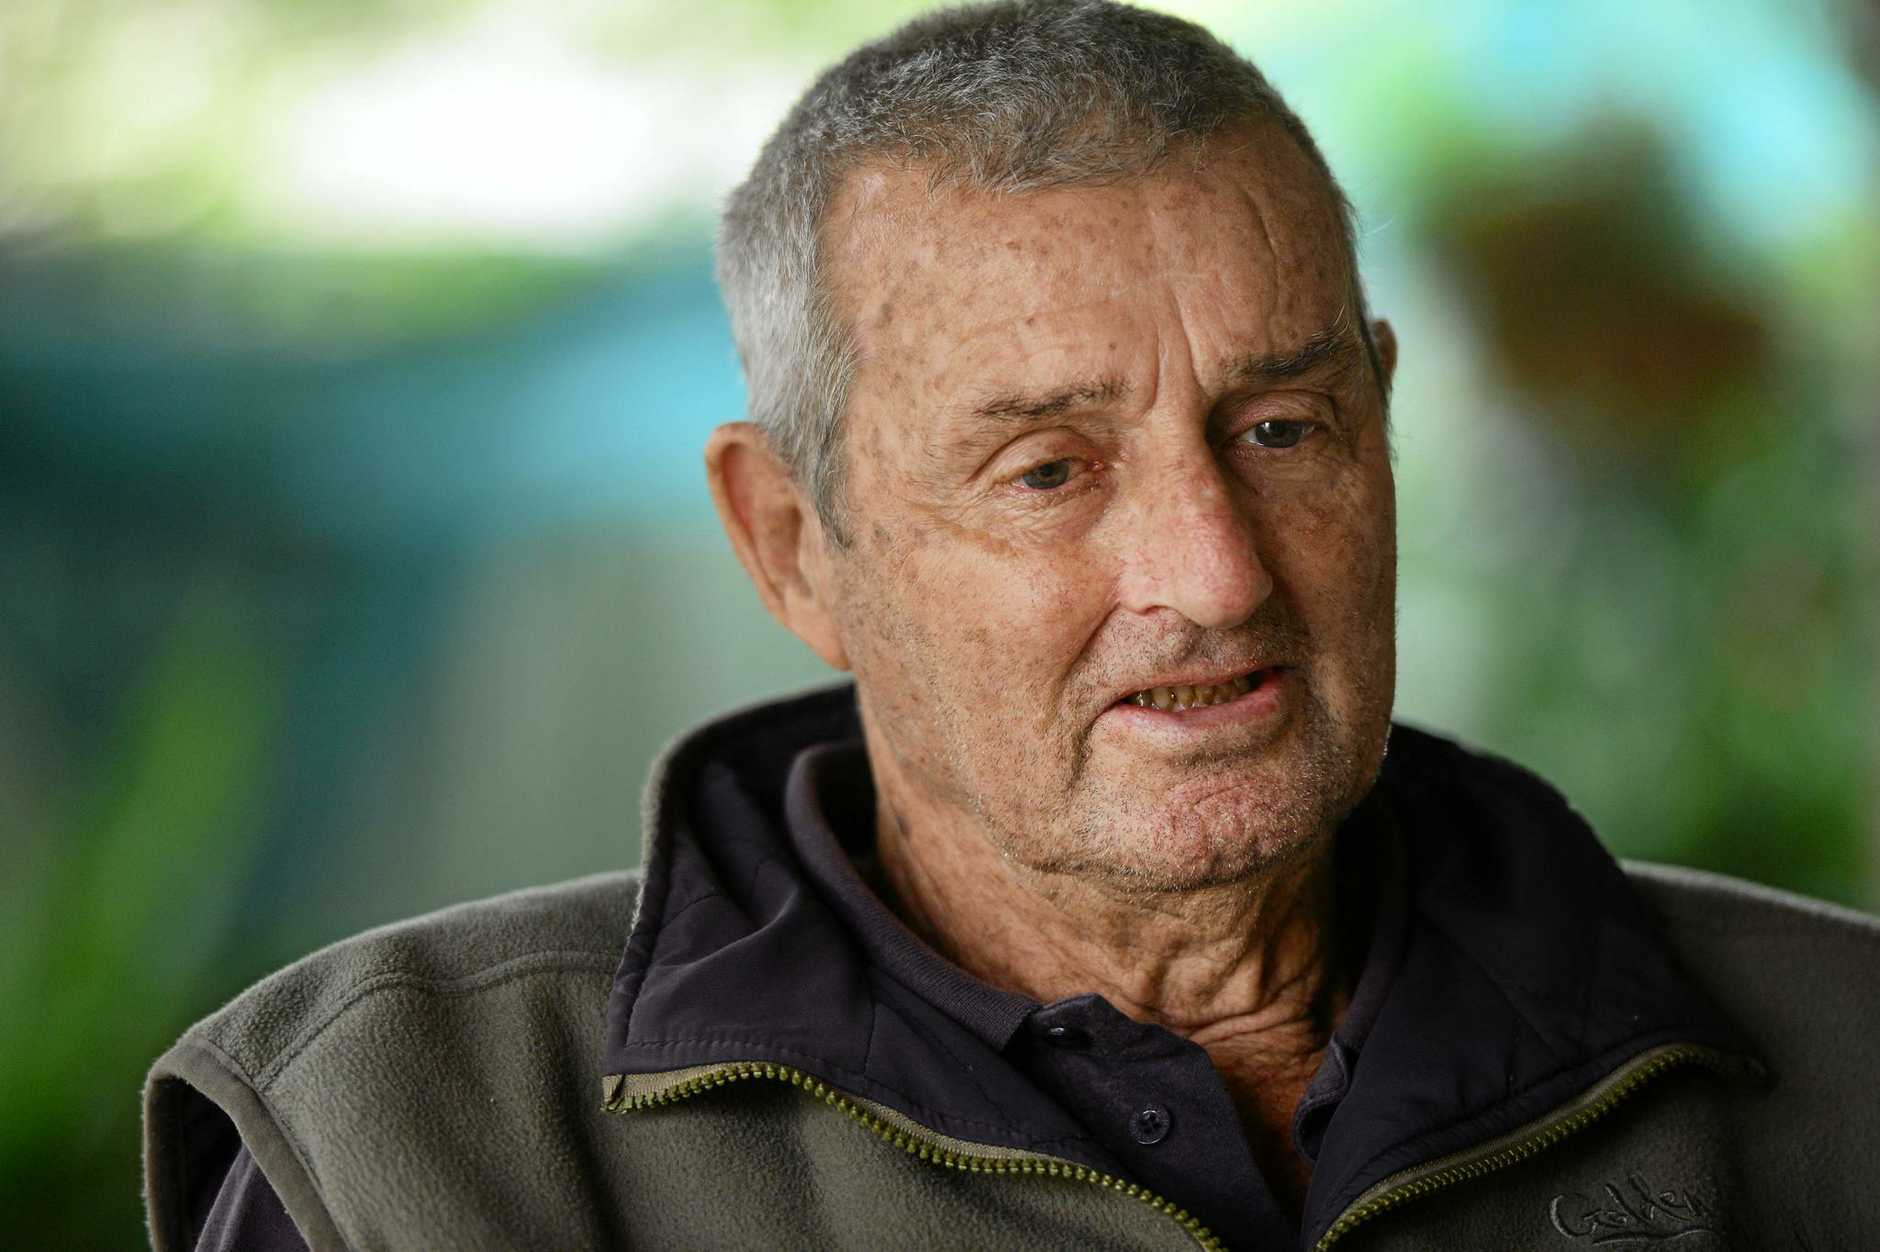 Percy Verrall suffers from 'black lung' disease caused by his time spent coal mining.